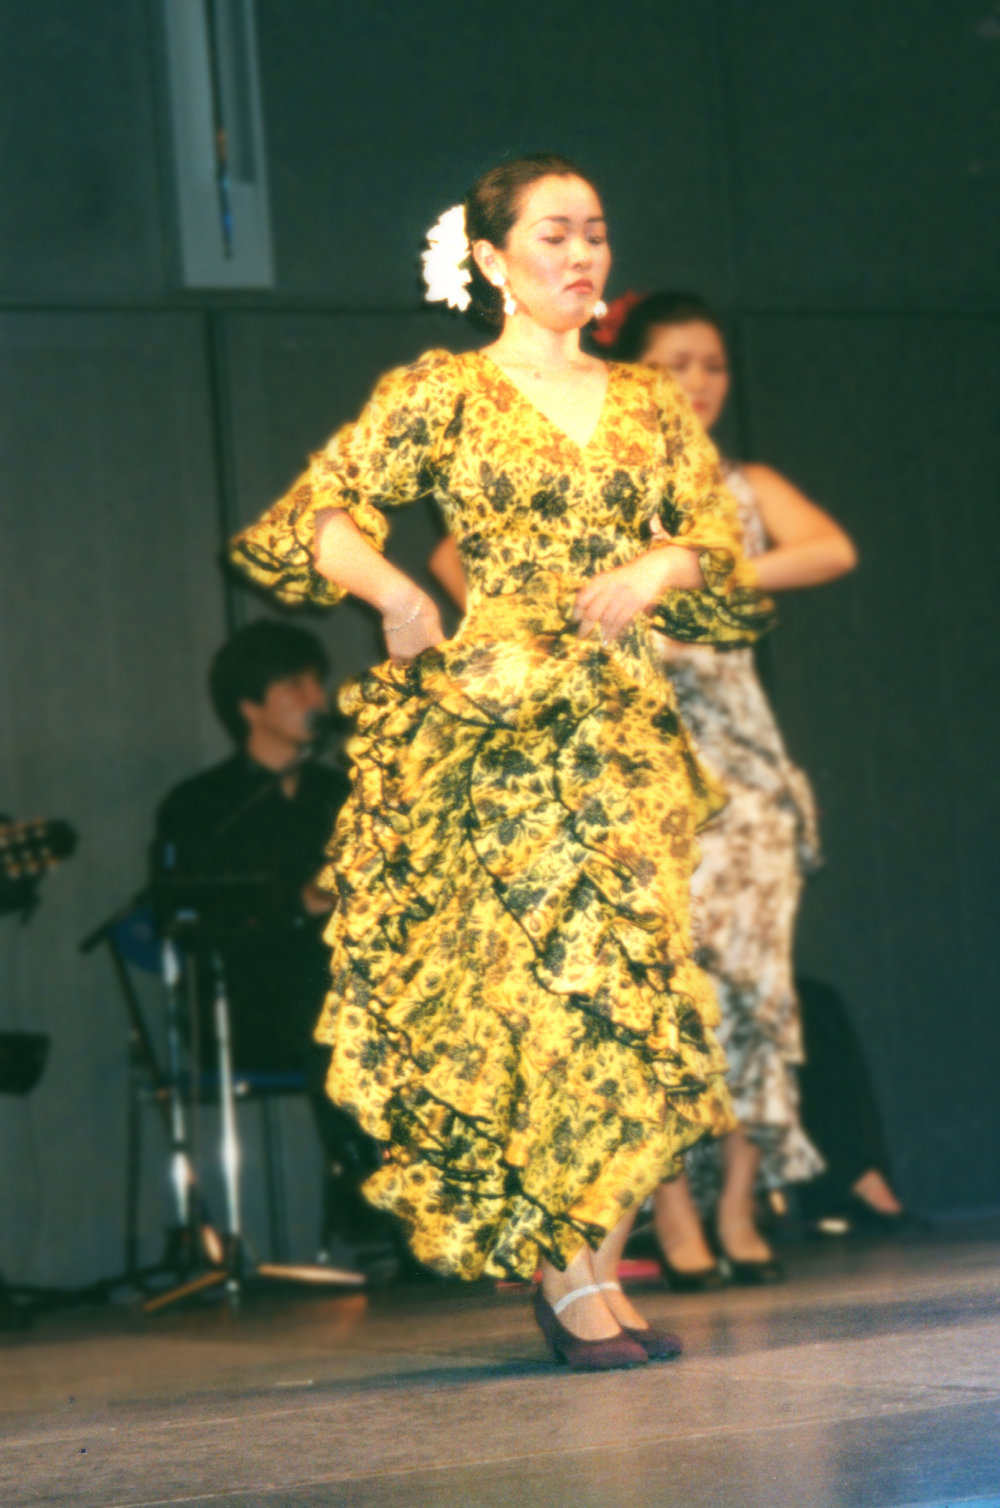 Chie dancing at her first performance in Tokyo.